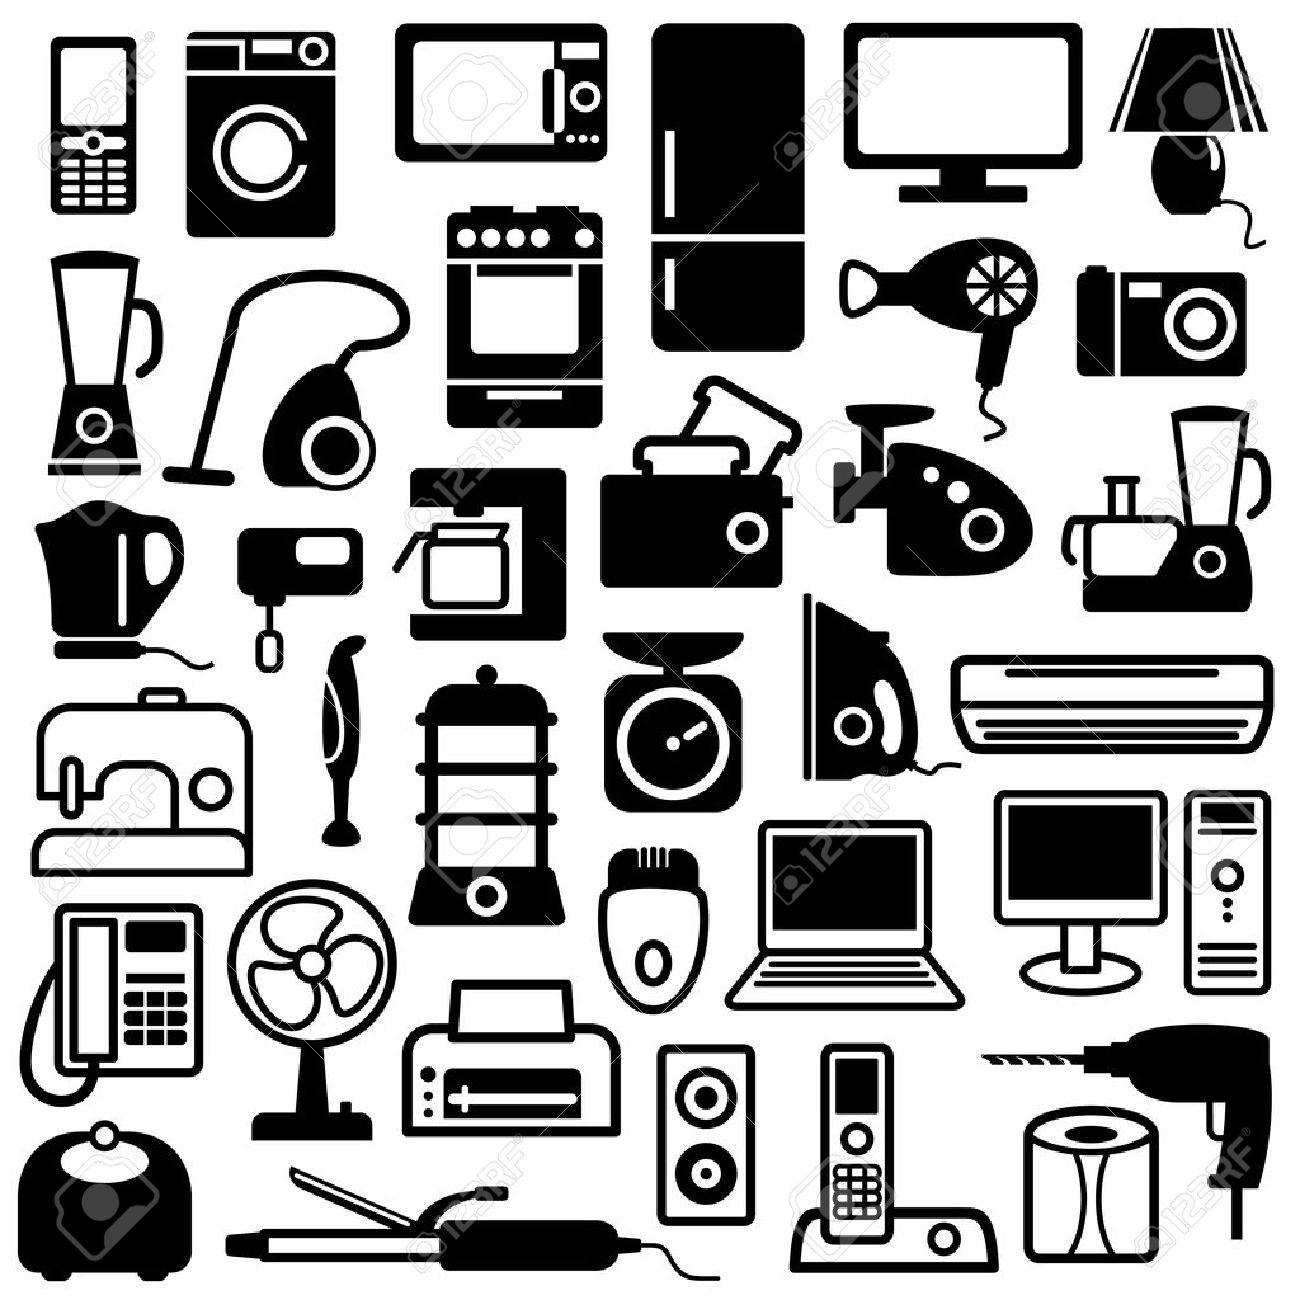 Home appliances icons - 6636309